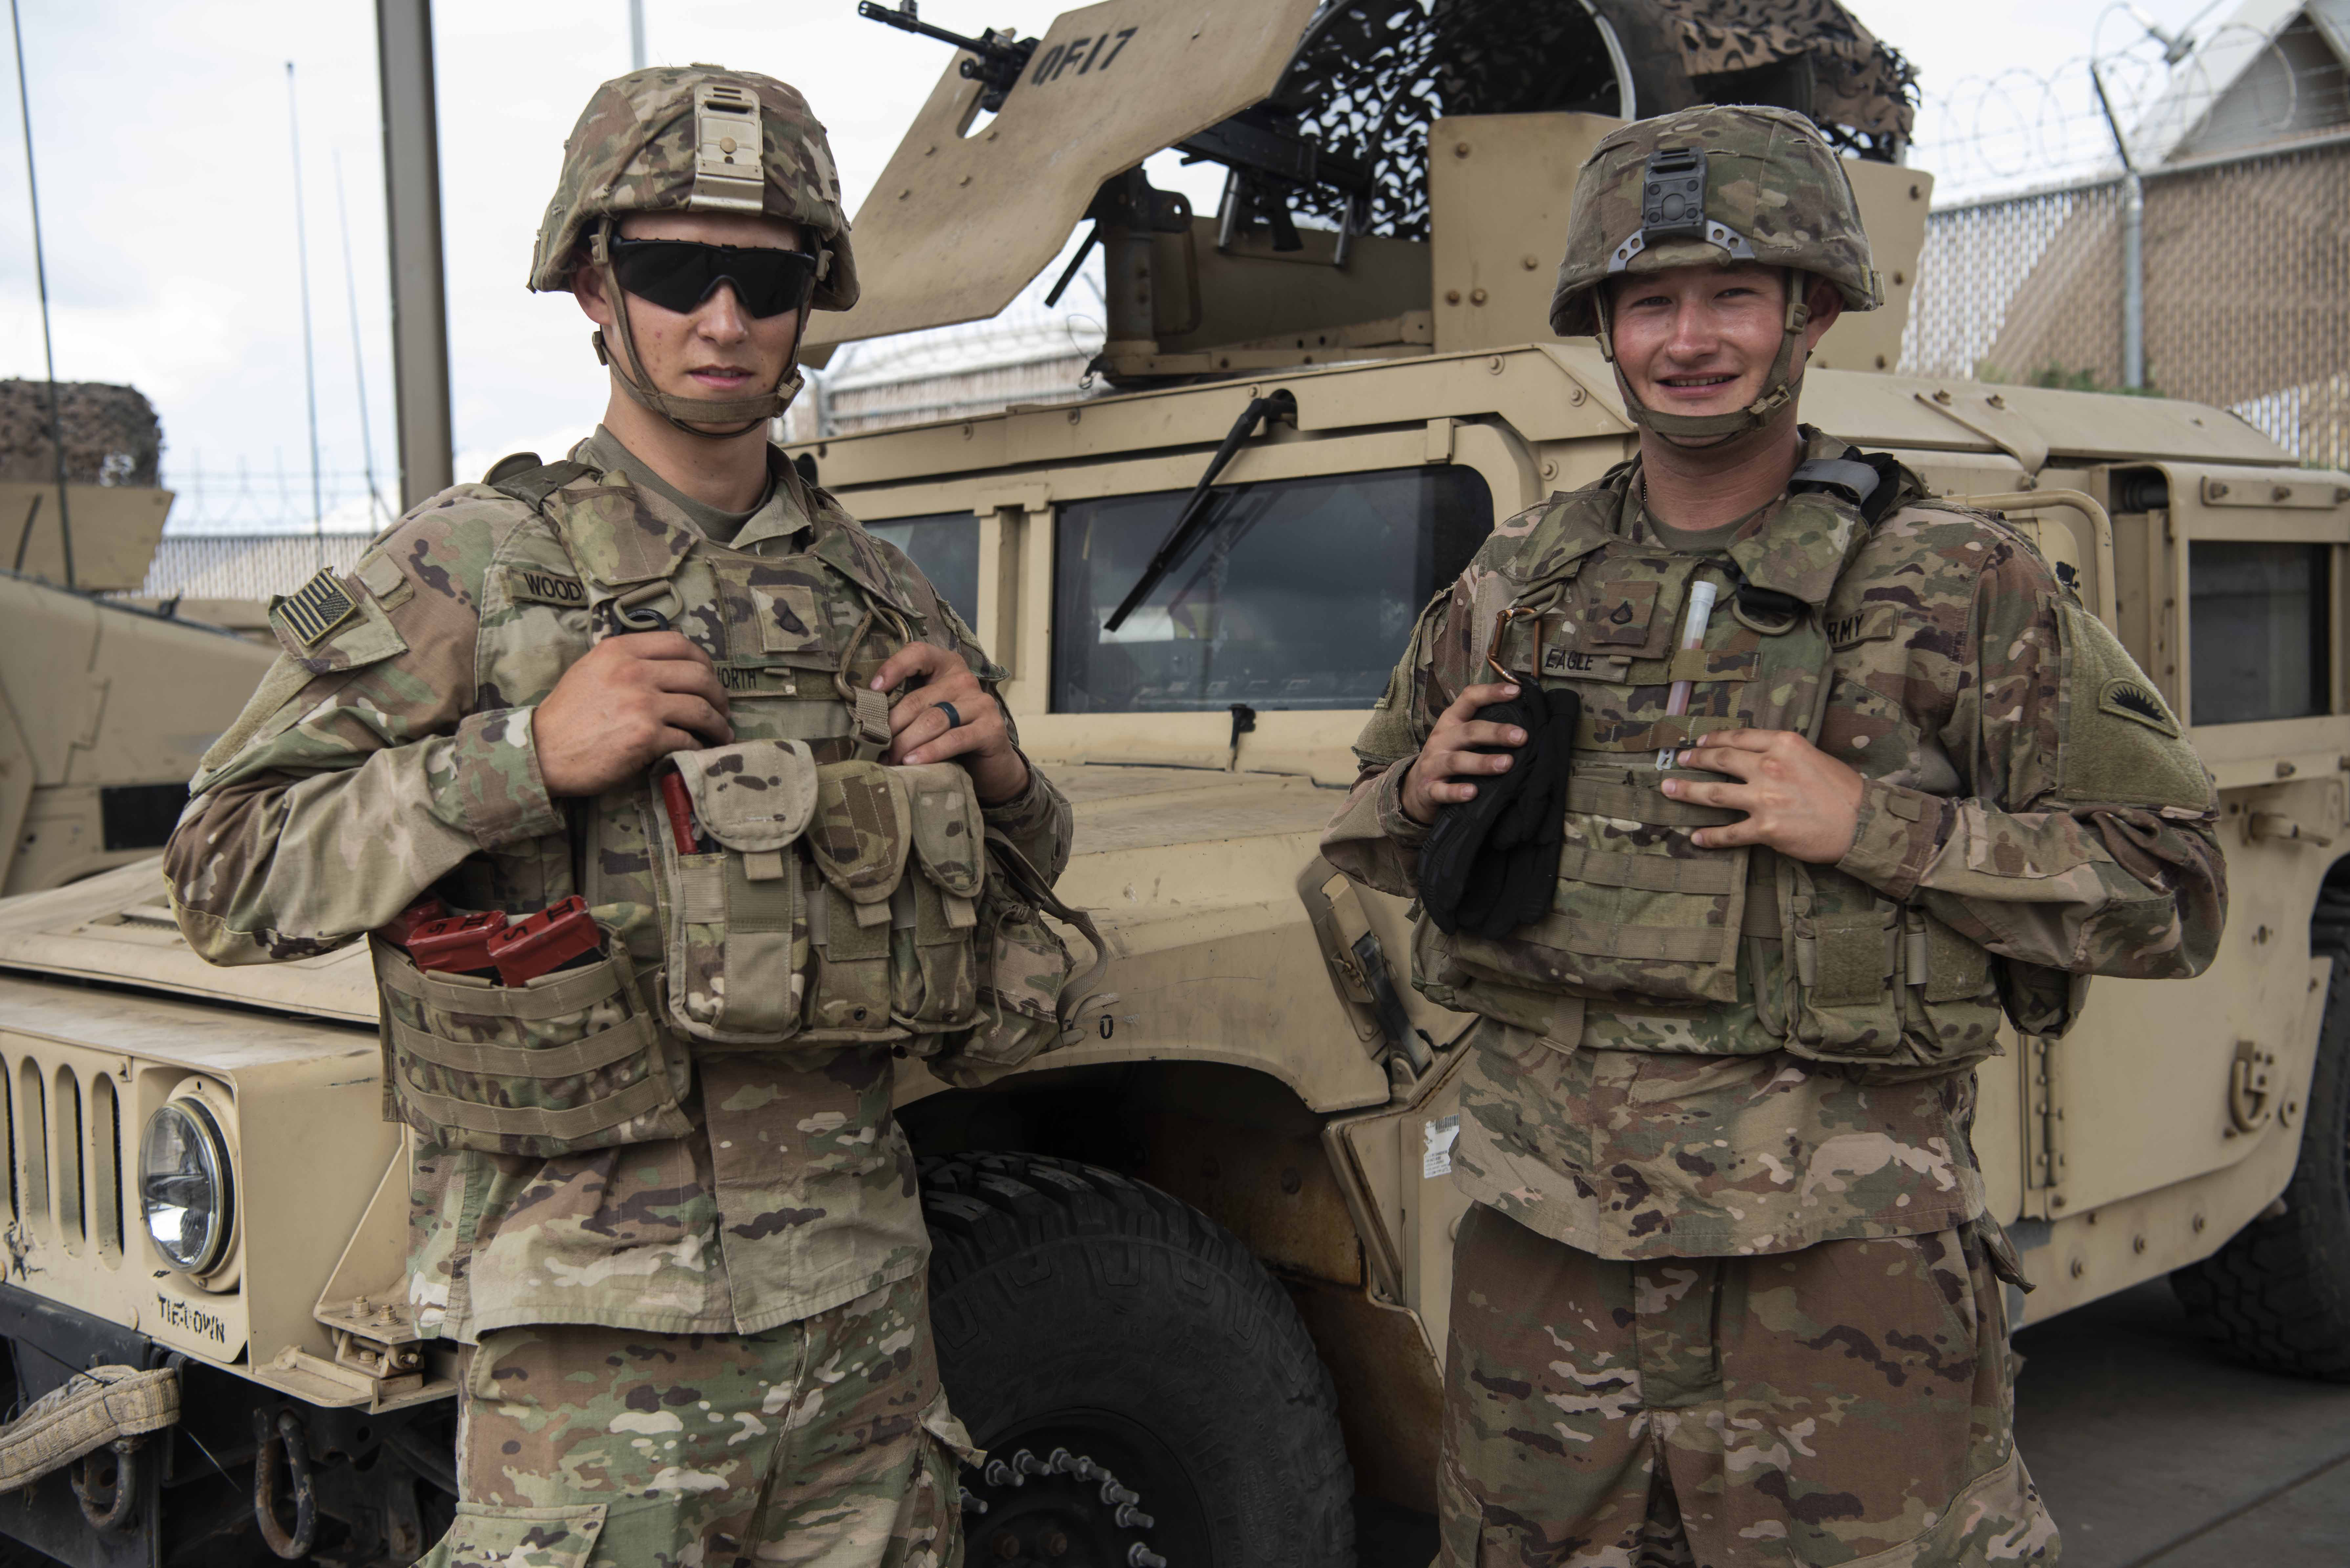 U.S. Army Pfc. Brodi Woodworth, driver and gunner for 3rd Platoon, Delta Company, Task Force Guardian (TFG) (left), and Pfc. Tyoma Eagle, driver and gunner for 4th Platoon, Delta Company, TFG (right), both assigned to Combined Joint Task Force – Horn of Africa, complete a pre-combat inspection (PCI) on a Humvee M1152, at Camp Lemonnier, Djibouti, Feb. 4, 2020. Woodworth and Eagle are members of the Quick Response Force (QRF), a unit on standby to respond to any incidents involving U.S. citizens who need assistance. (U.S. Air Force photo by Tech. Sgt. Ashley Nicole Taylor)